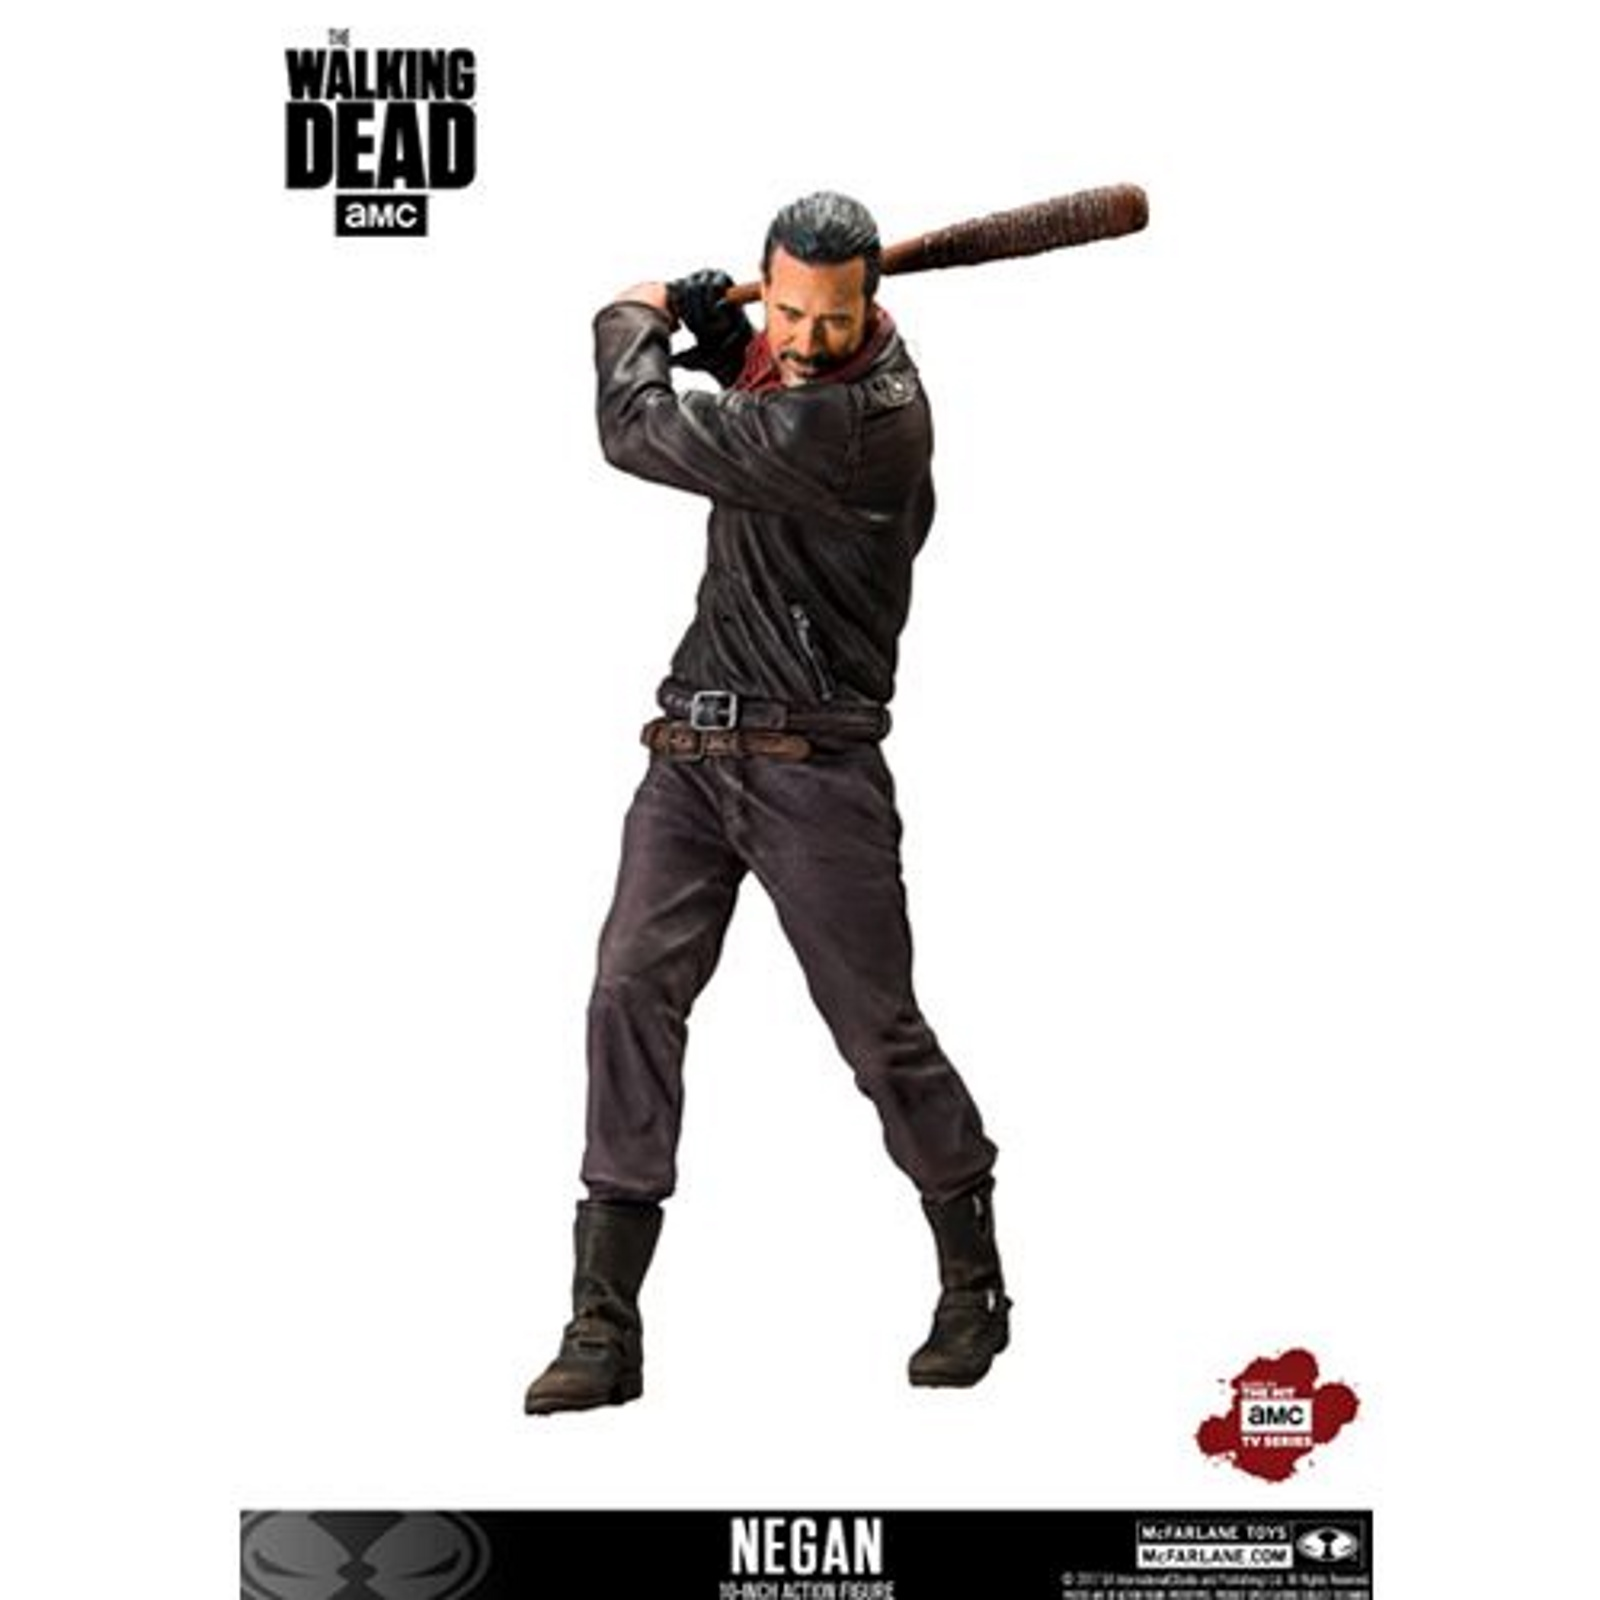 THE WALKING DEAD (TV): DELUXE BOX - NEGAN DELUXE McFARLANE FIGURE